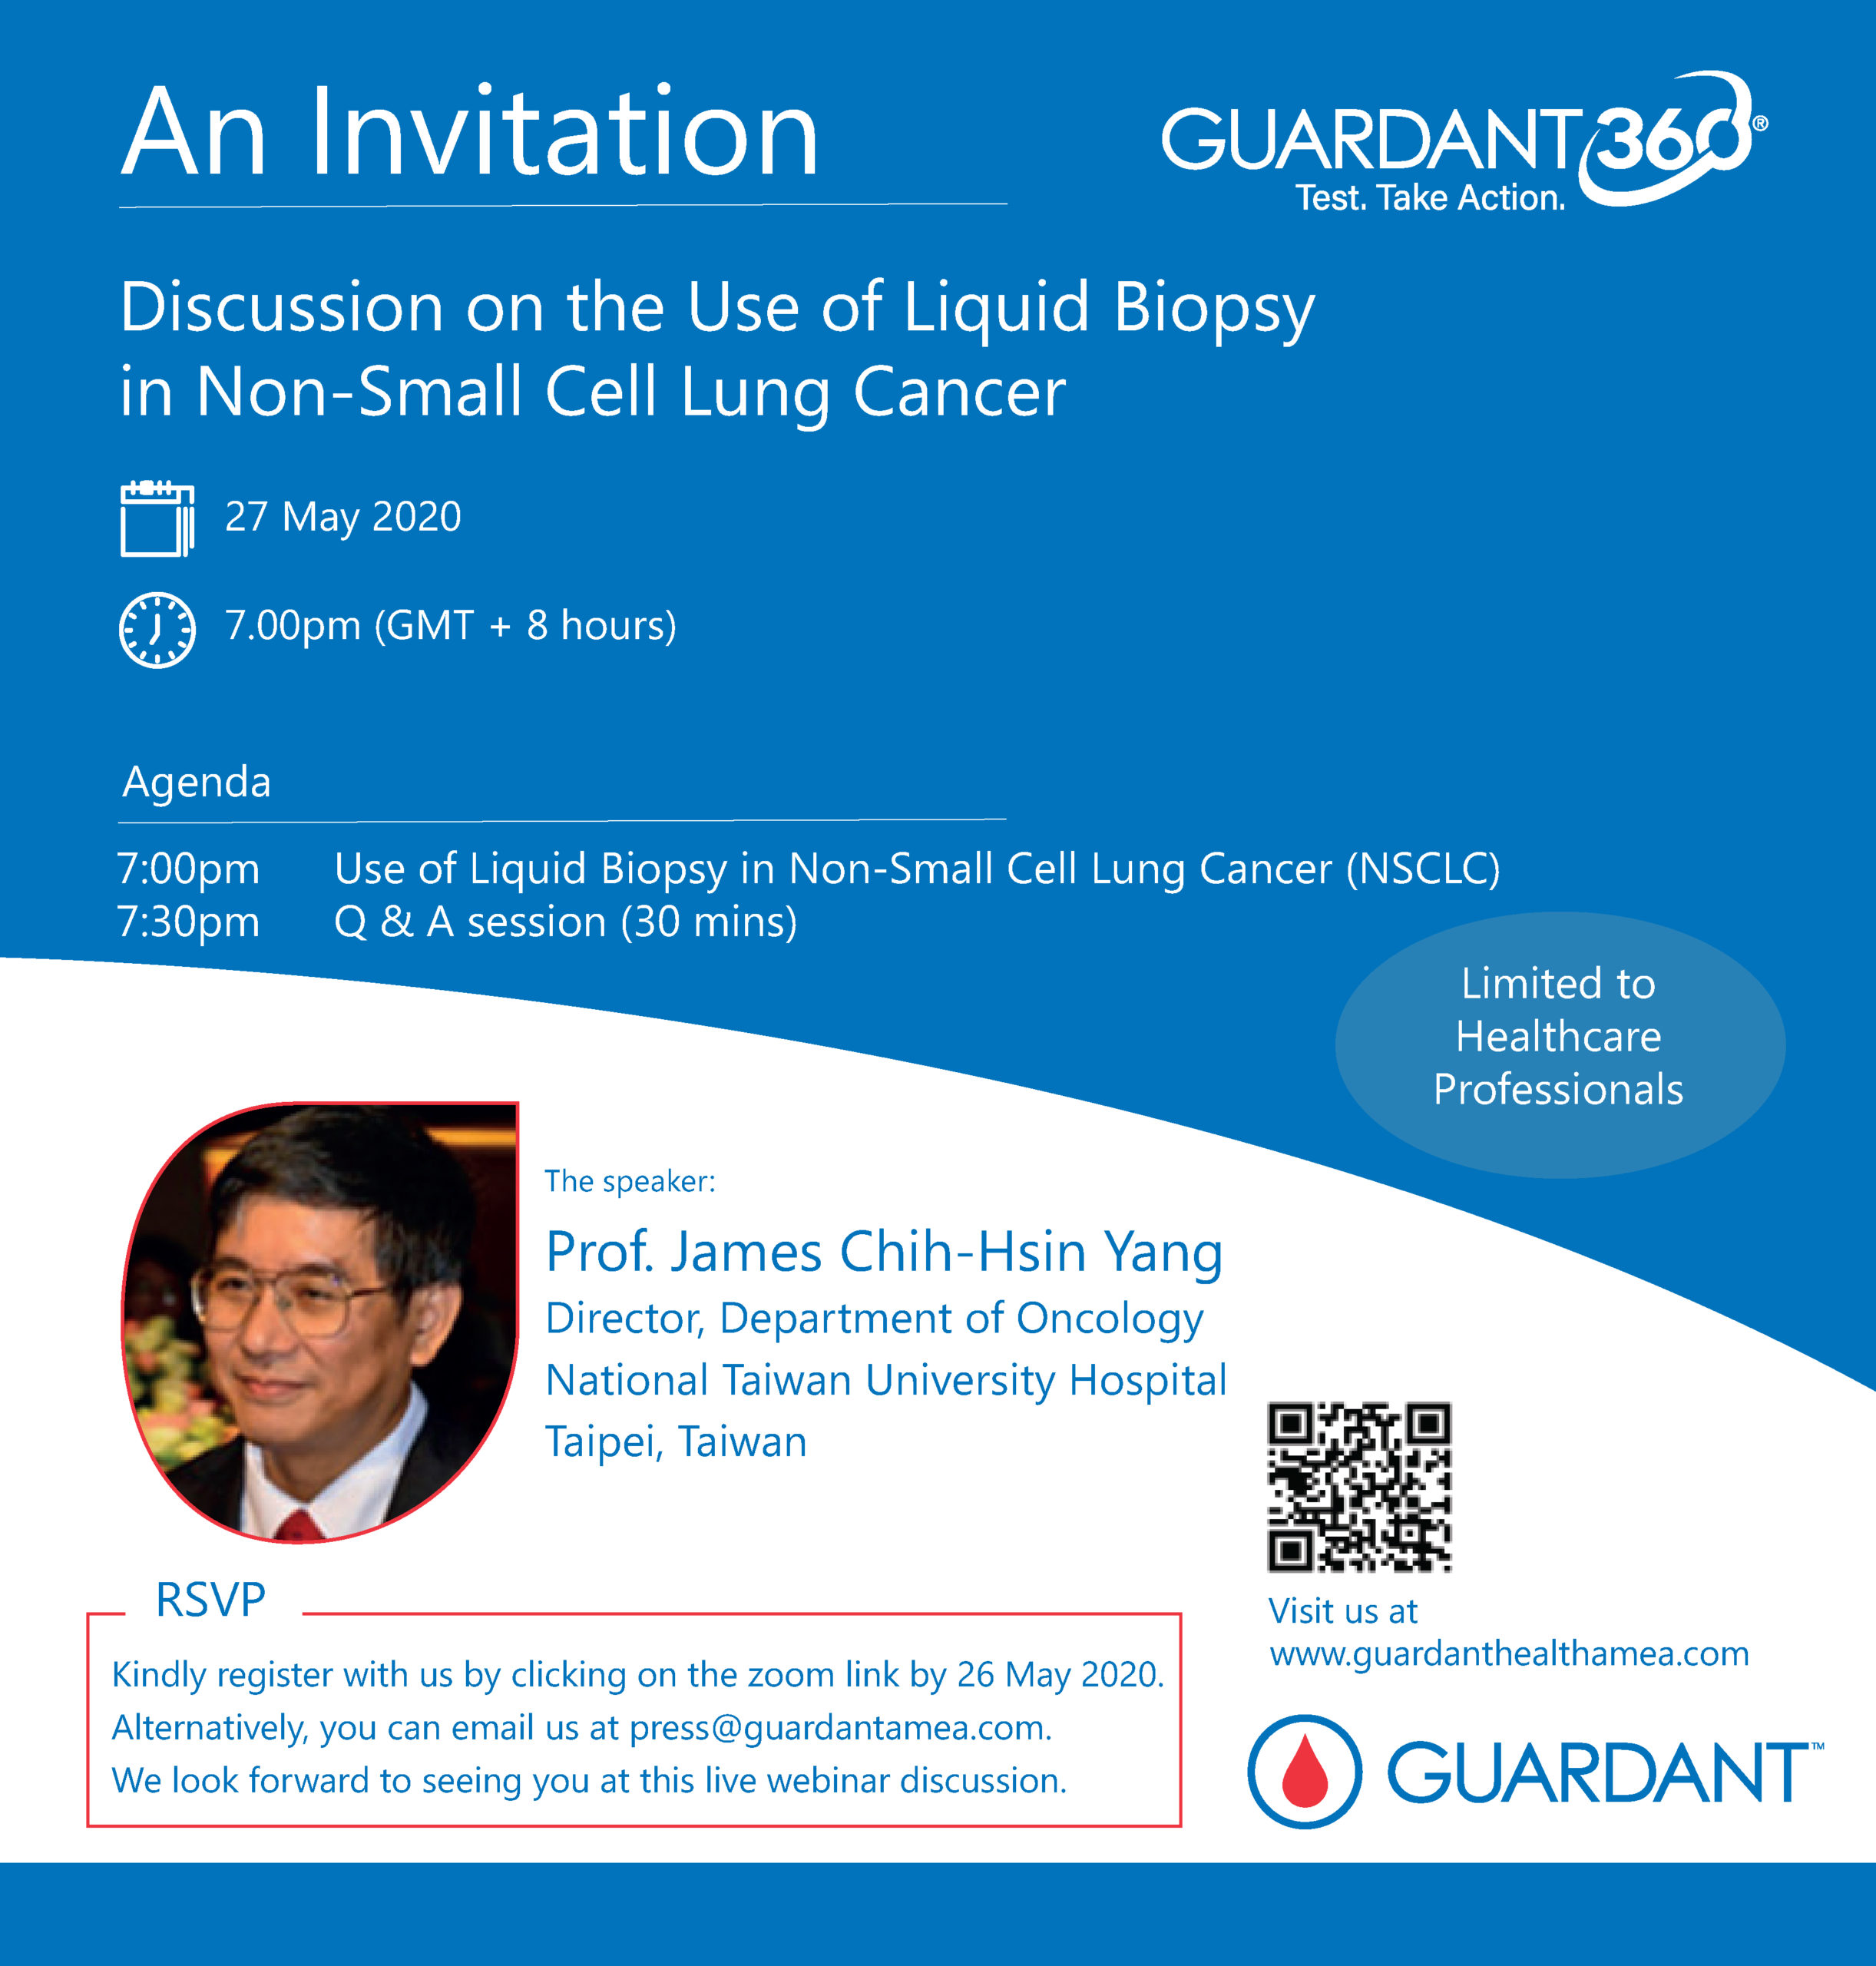 Discussion on the Use of Liquid Biopsy in Non-Small Lung Cancer